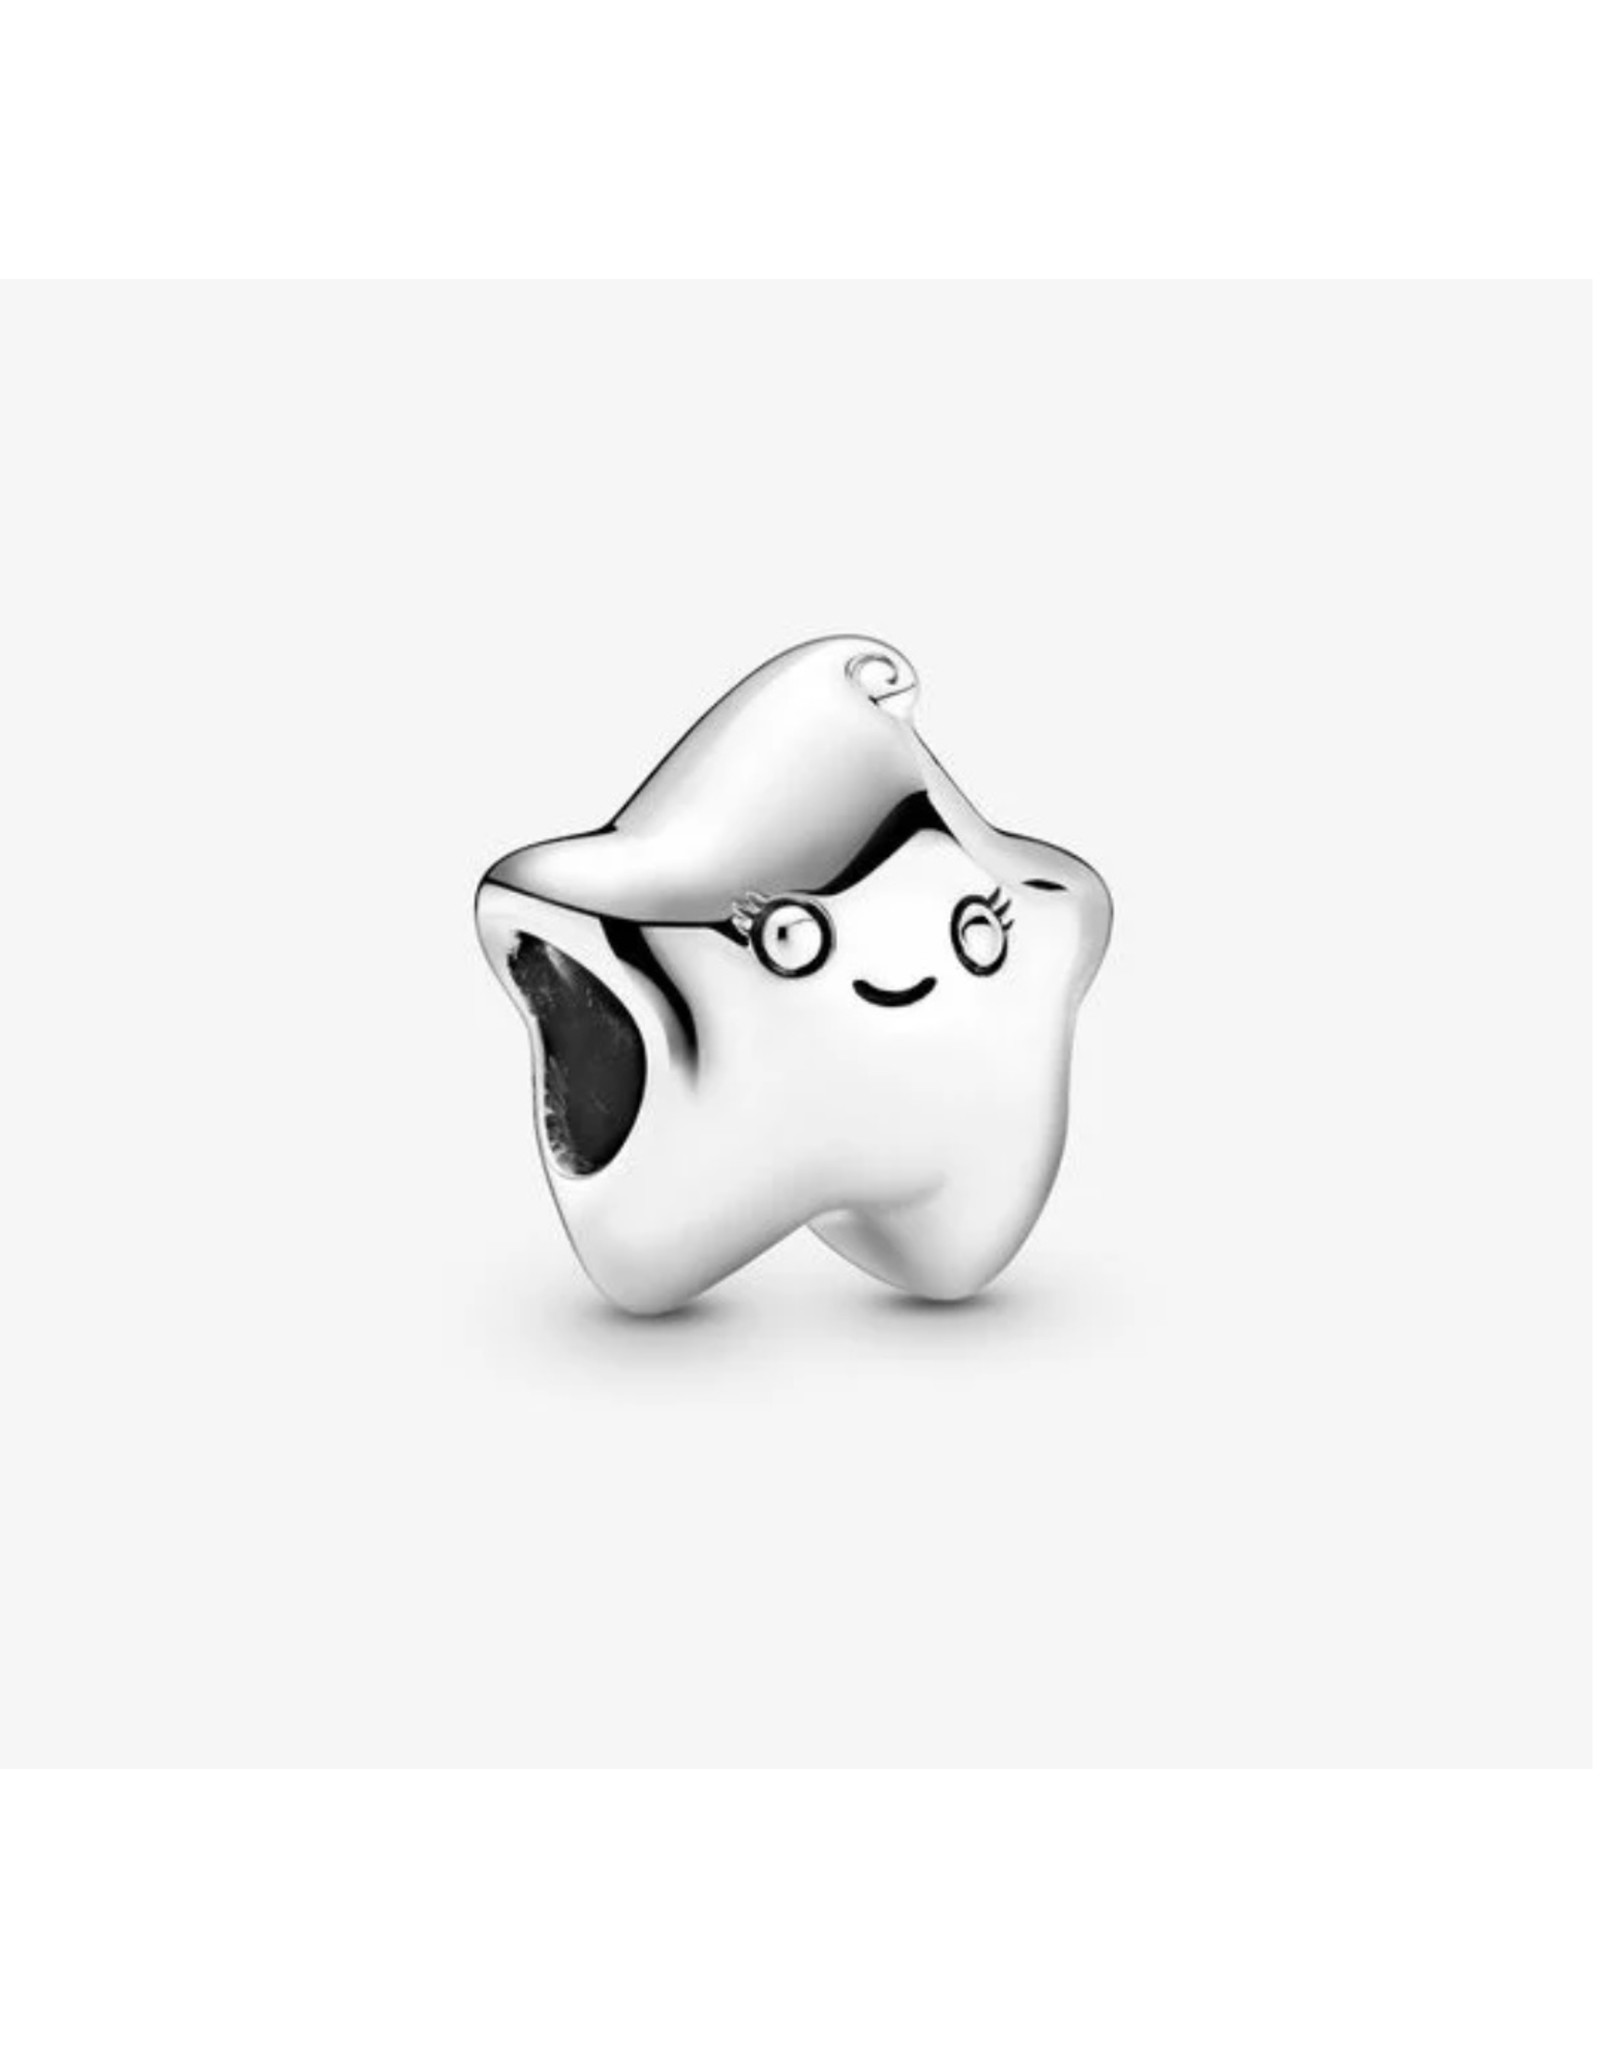 Pandora Pandora Charm,799211C00,Isa The Star, Sterling Silver